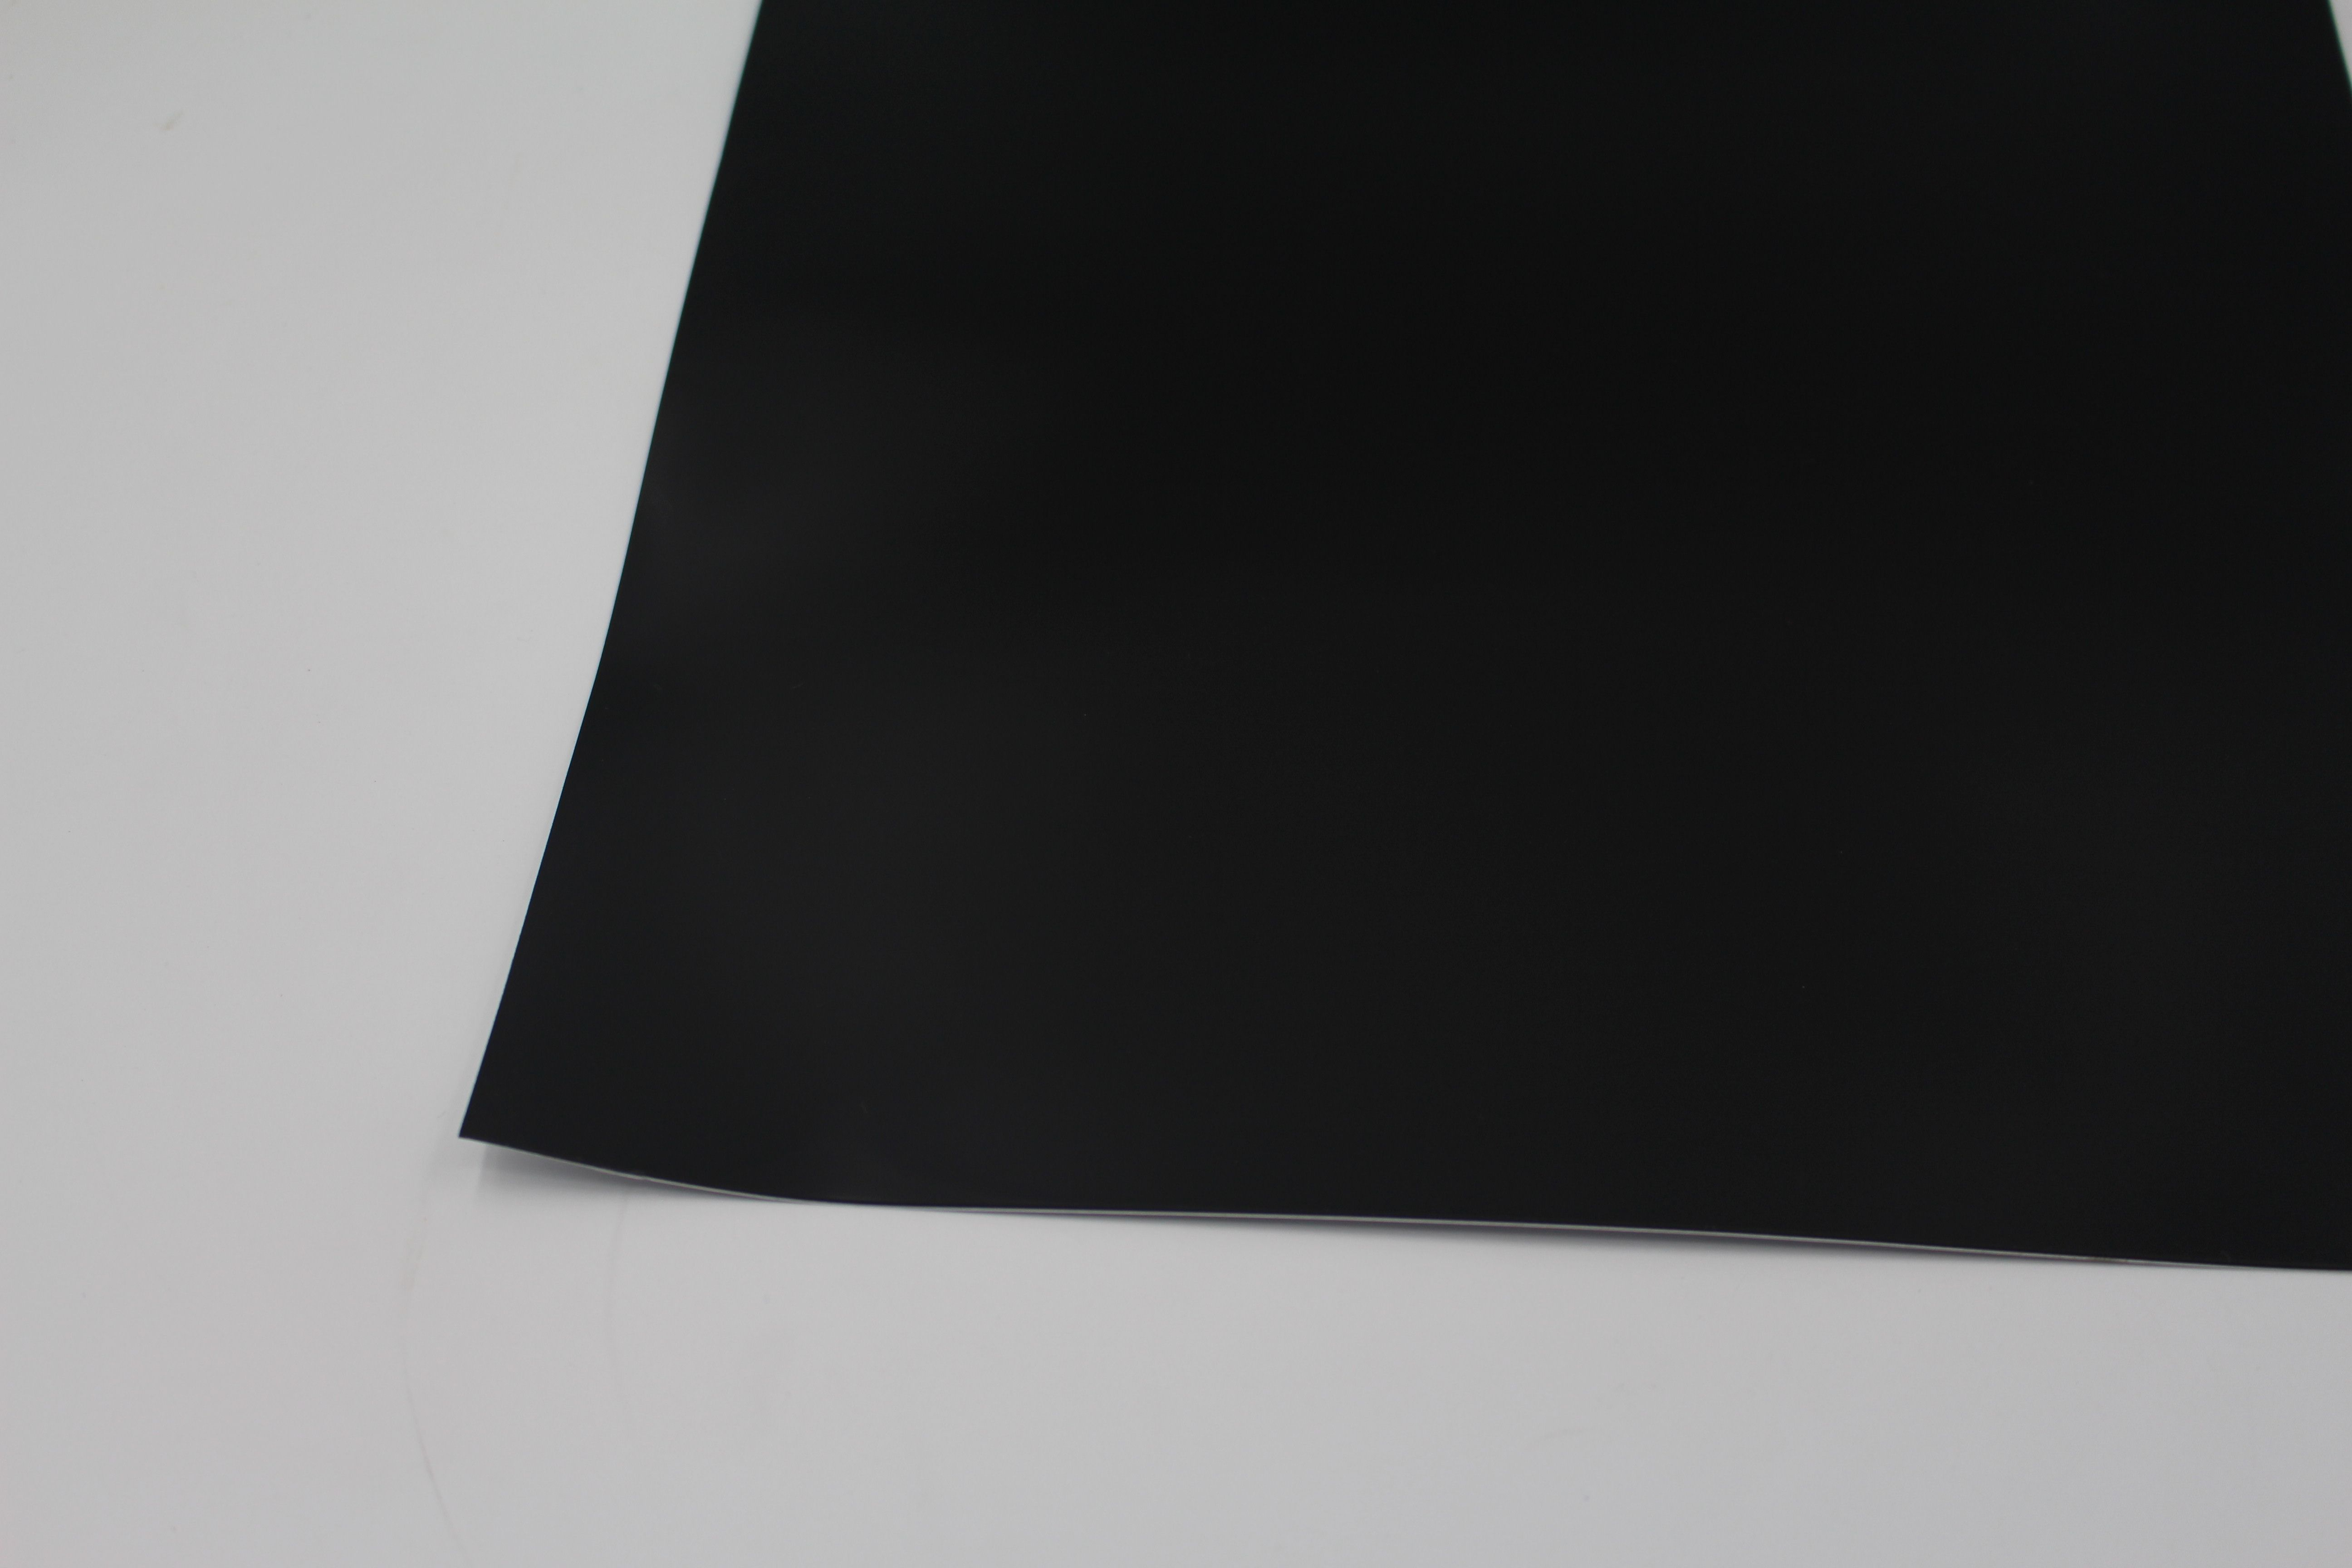 Lms Silicone Rubber Sheet Heat Resistant 1mm Thickness 300mm Width 300mm Length Silicone Rubber Rubber Mat Rubber